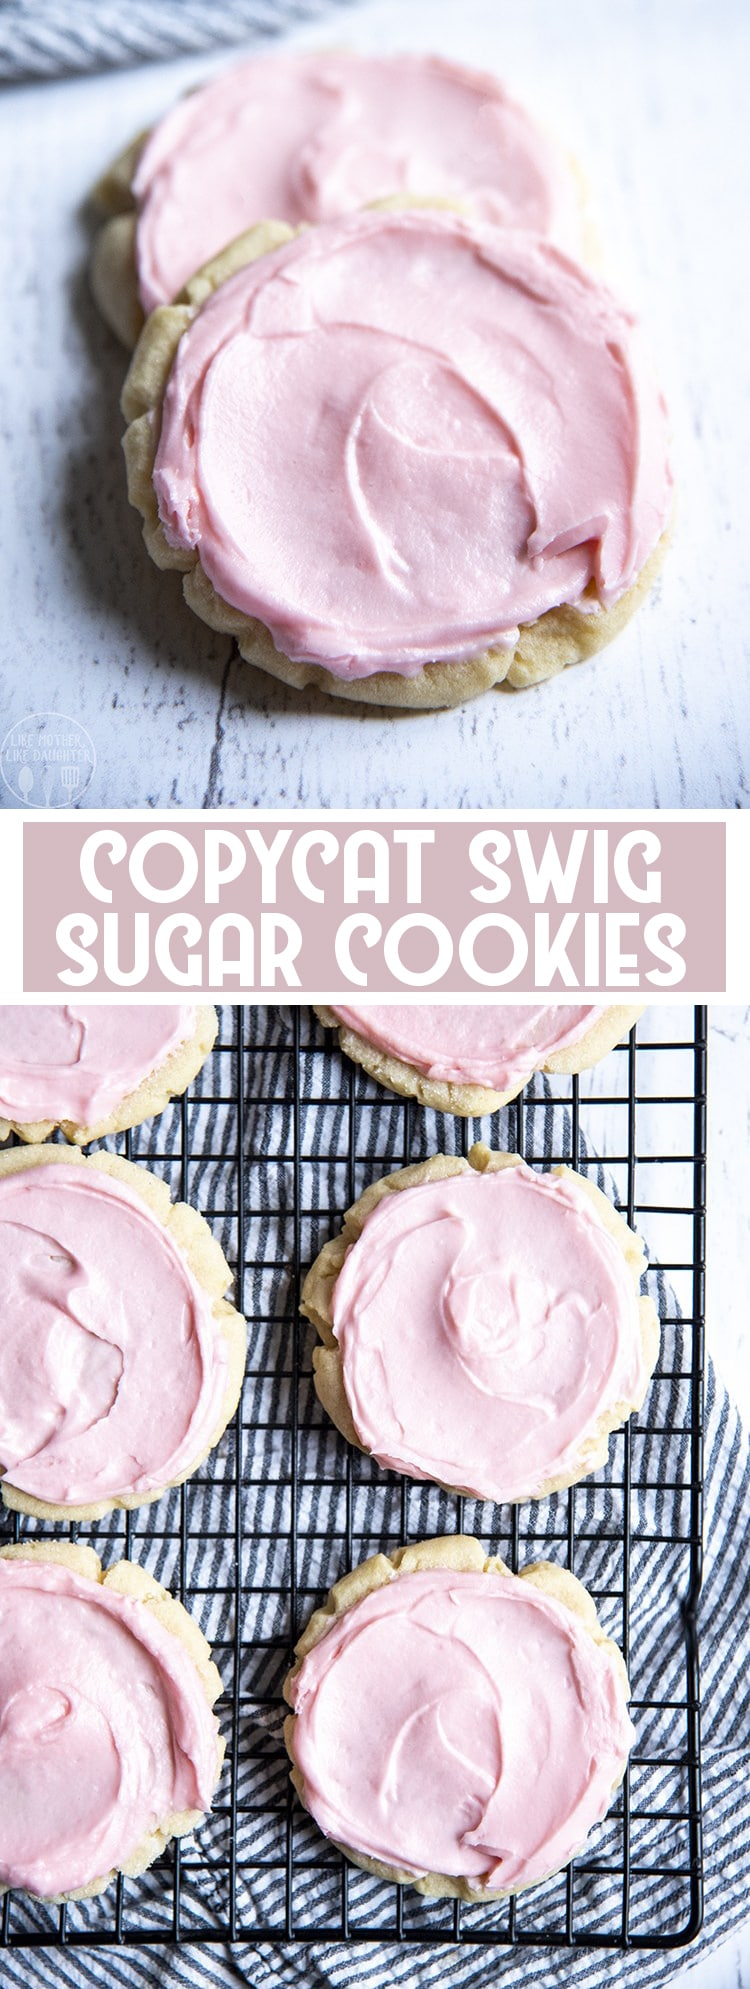 These copycat swig sugar cookies are a delicious soft and buttery sugar cookie, that is somewhere between a sugar cookie and a shortbread cookie, topped with a delicious sweet pink buttery frosting